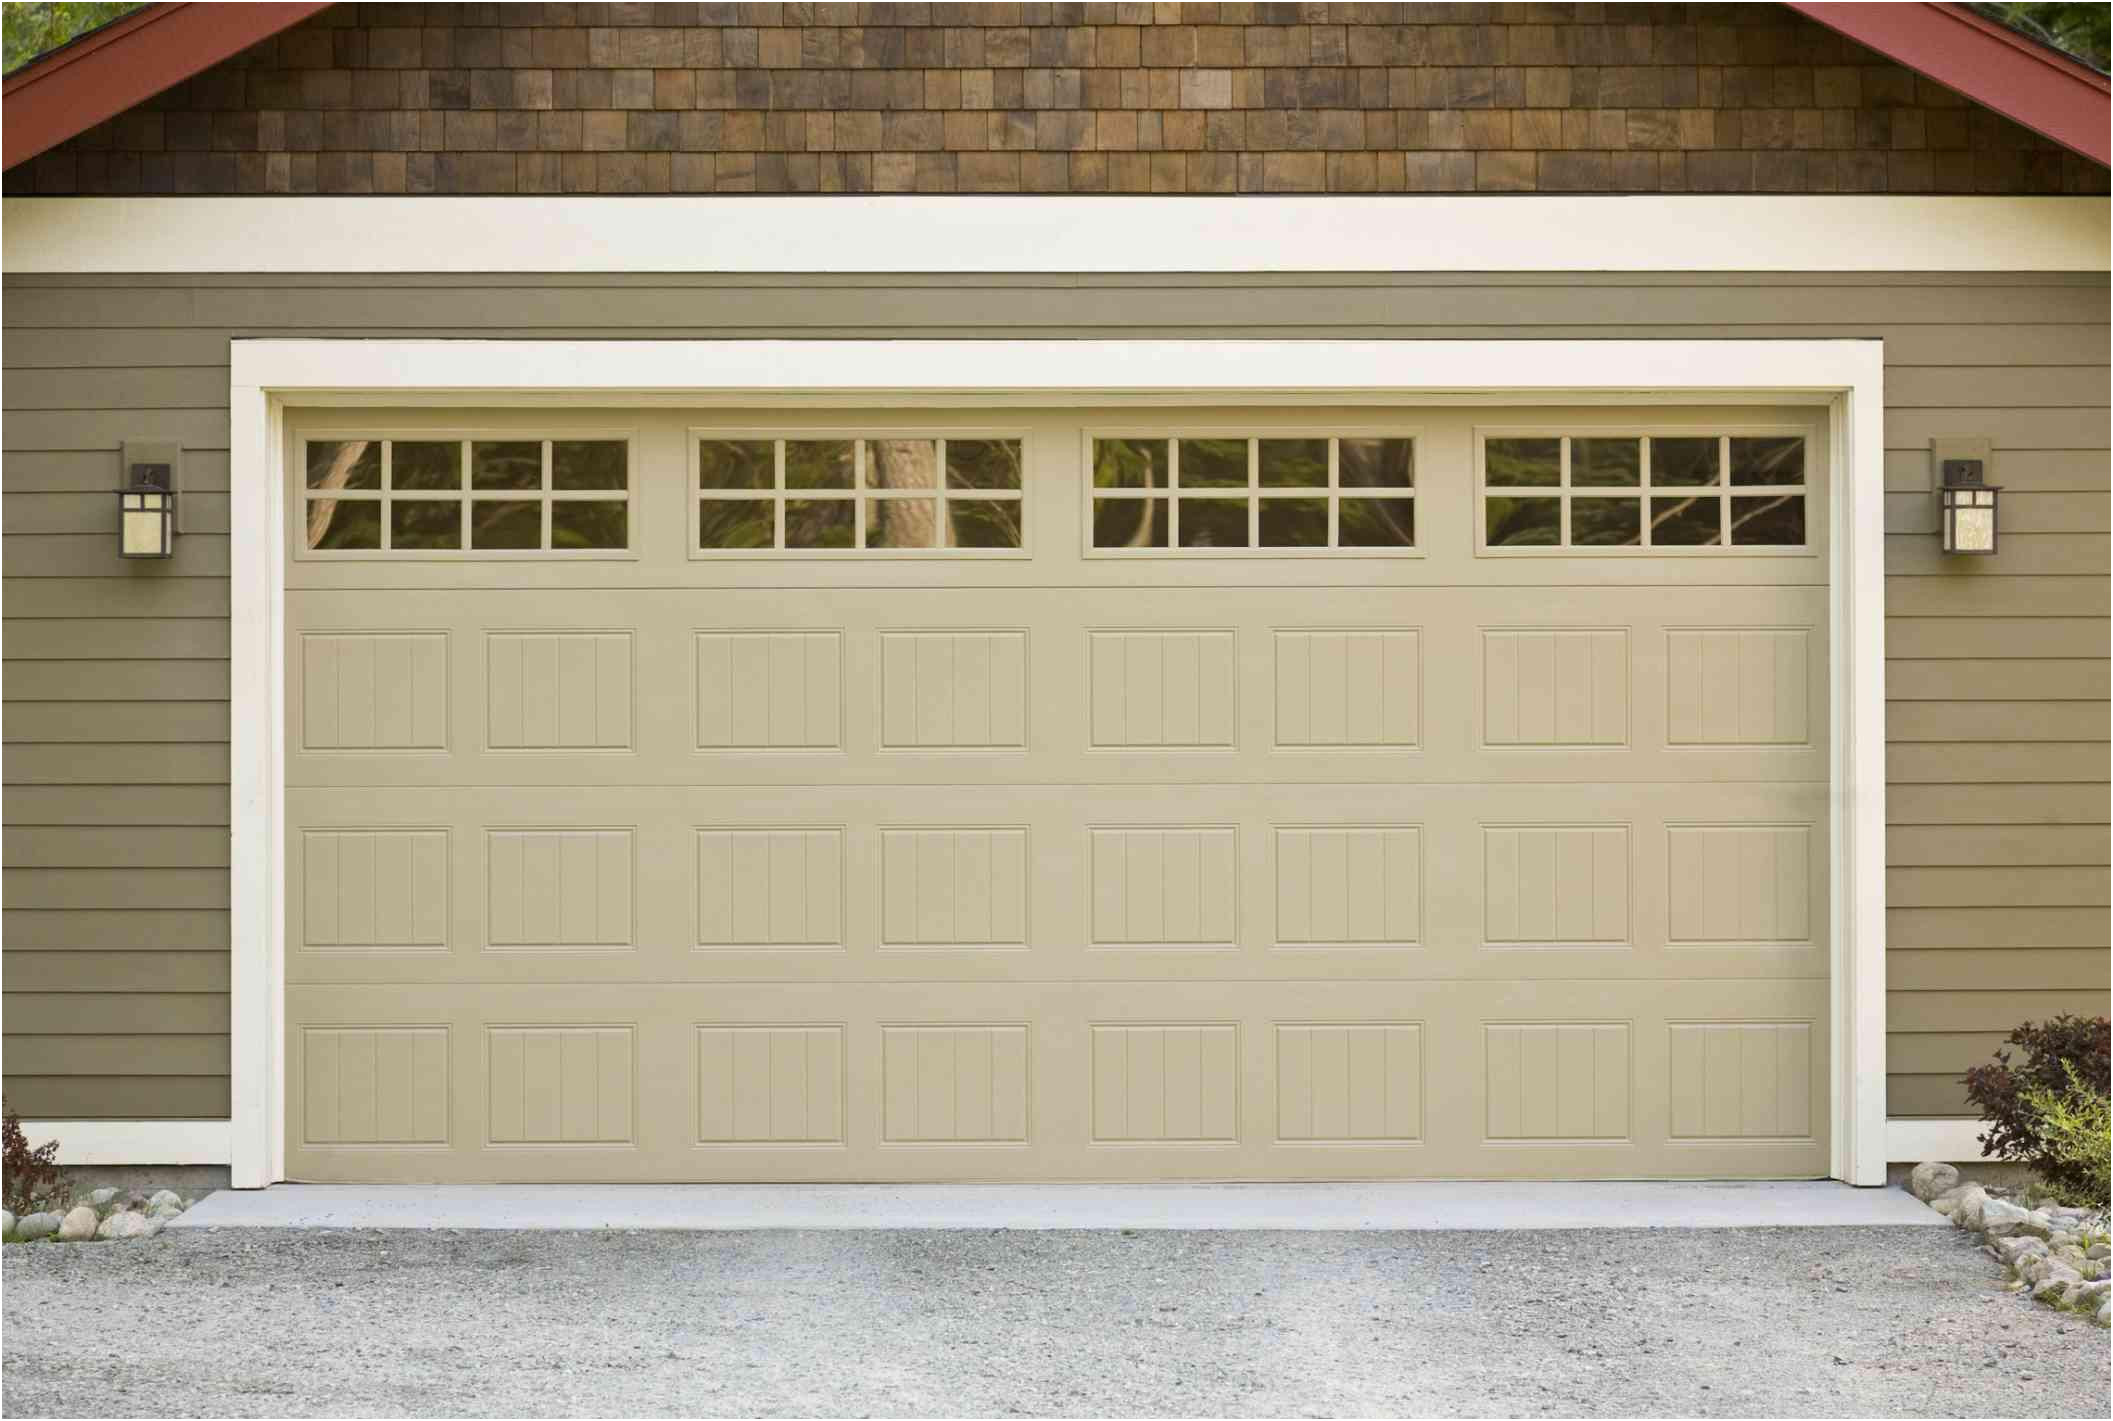 Inspirational Truck Garage Door Sizes